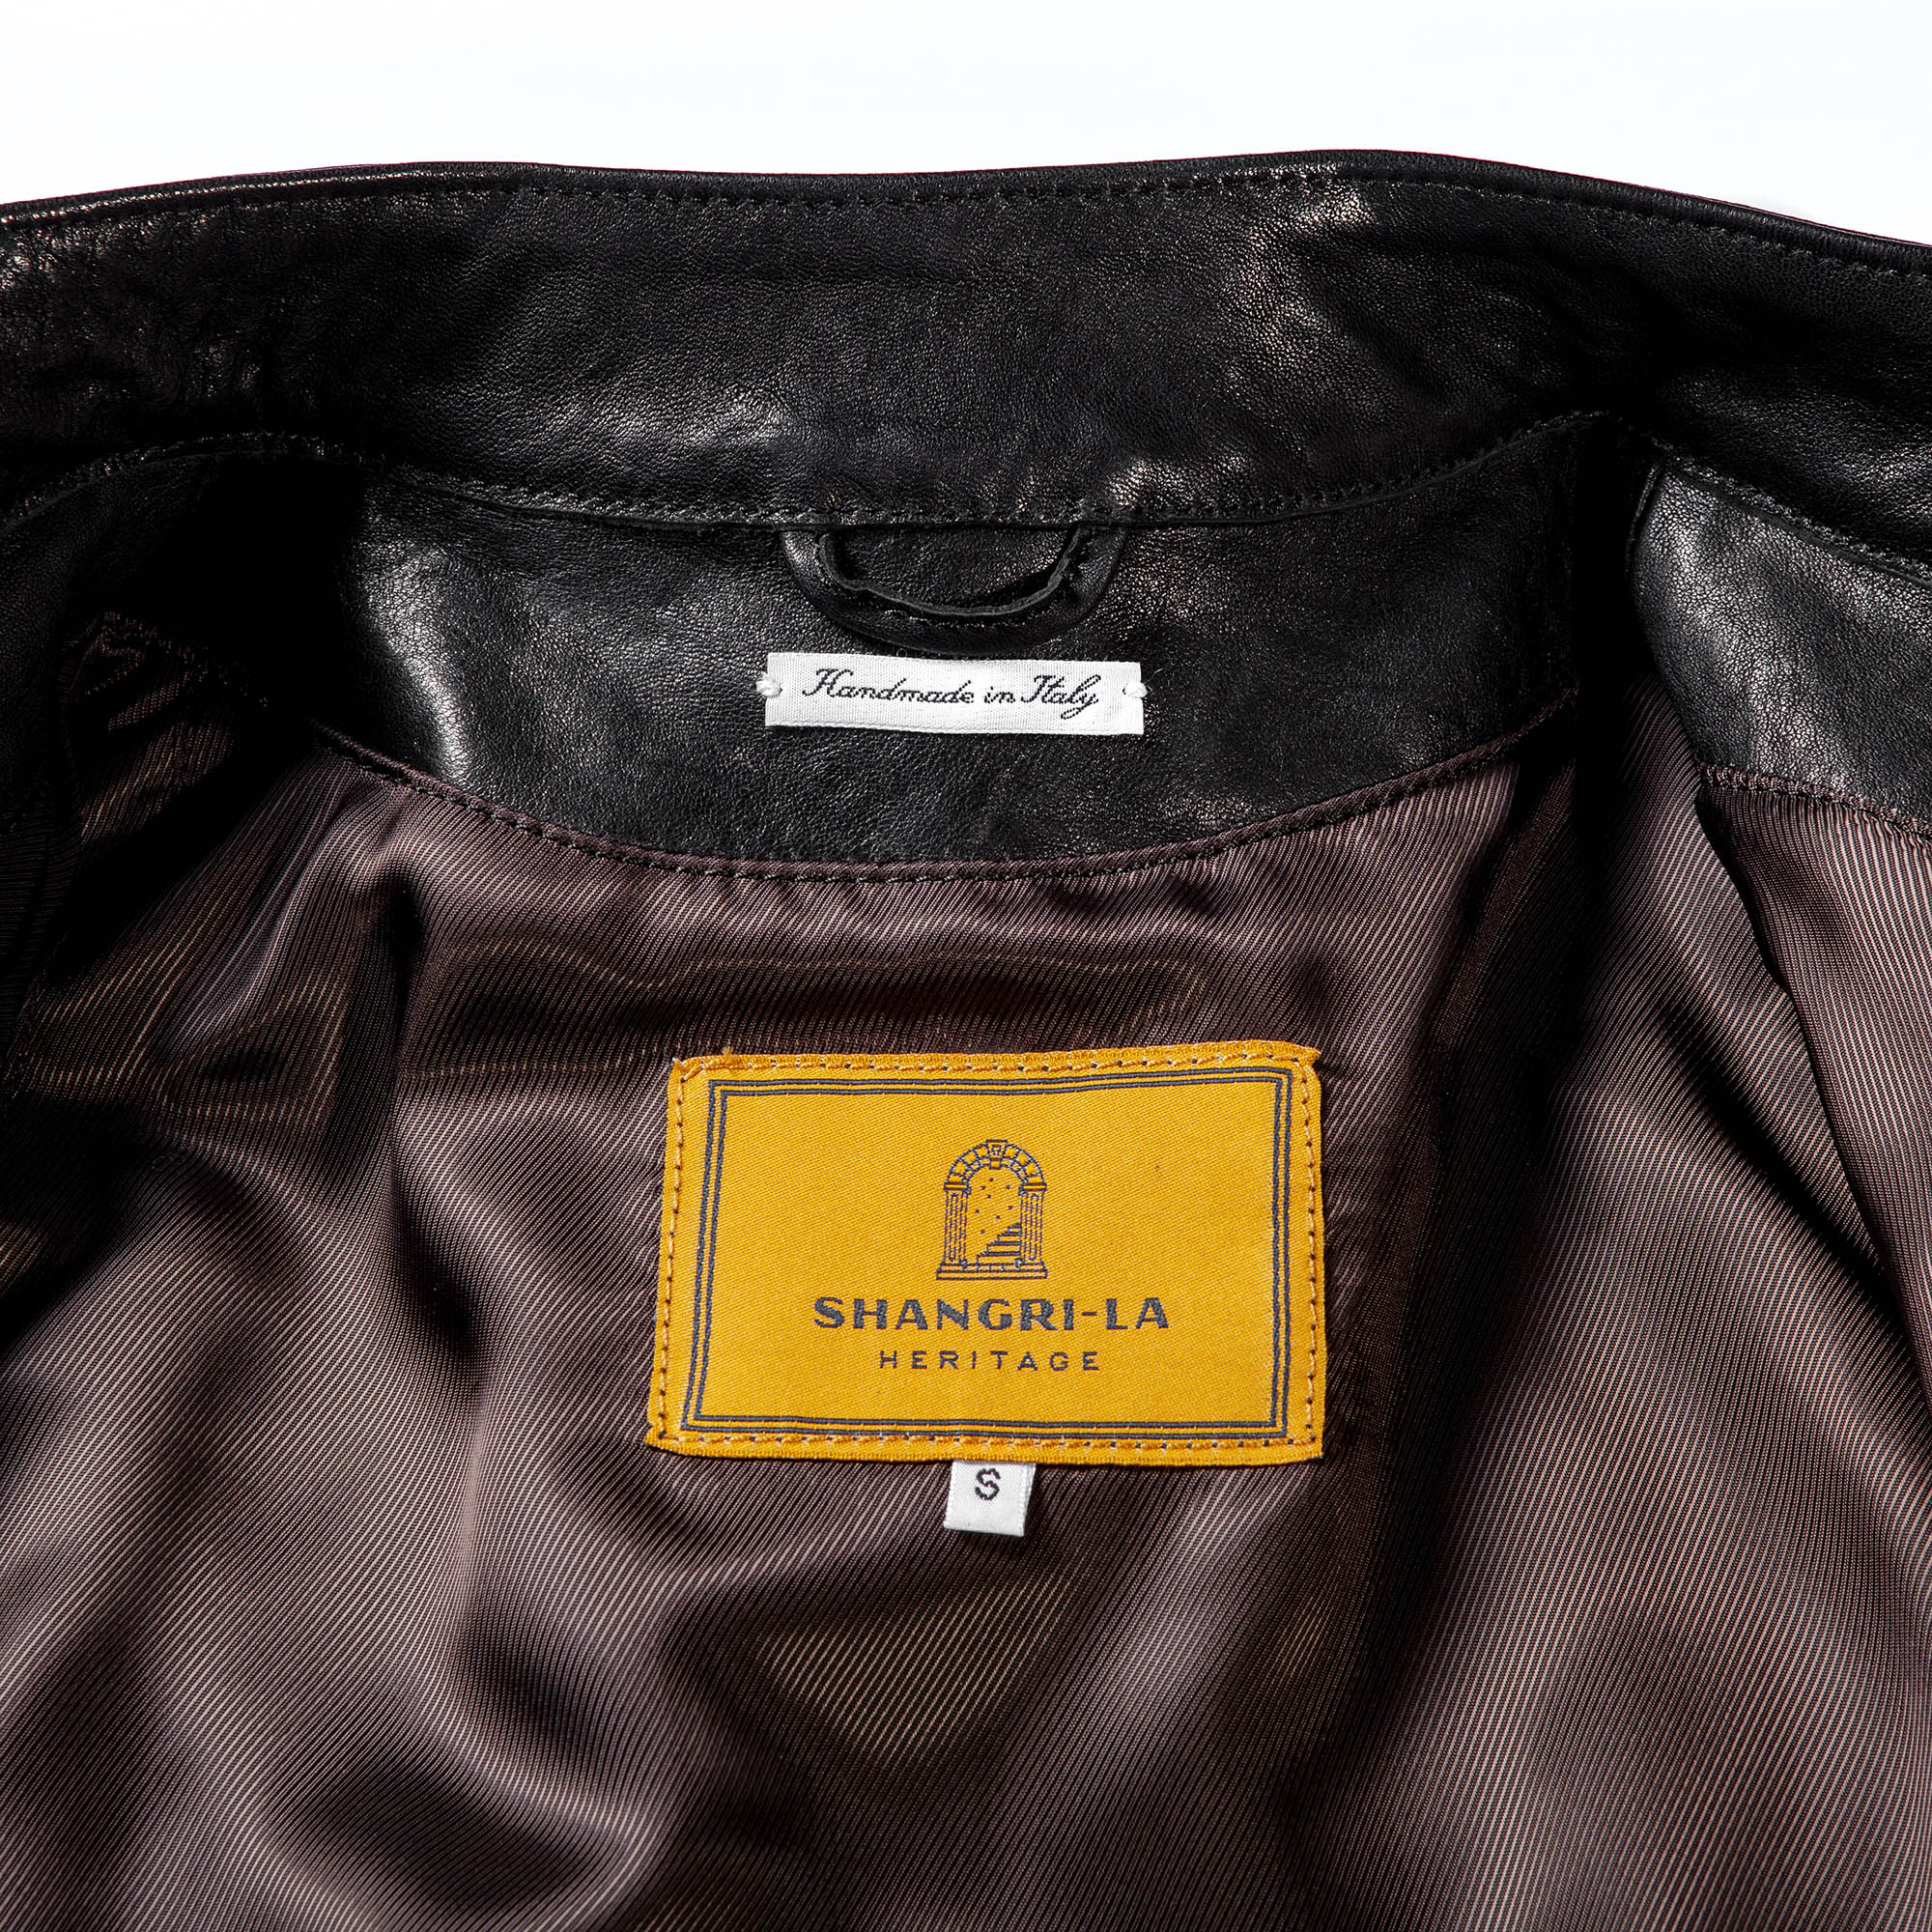 shangri-la-heritage-cafe-racer-black-lambskin-jacket-still-life-label